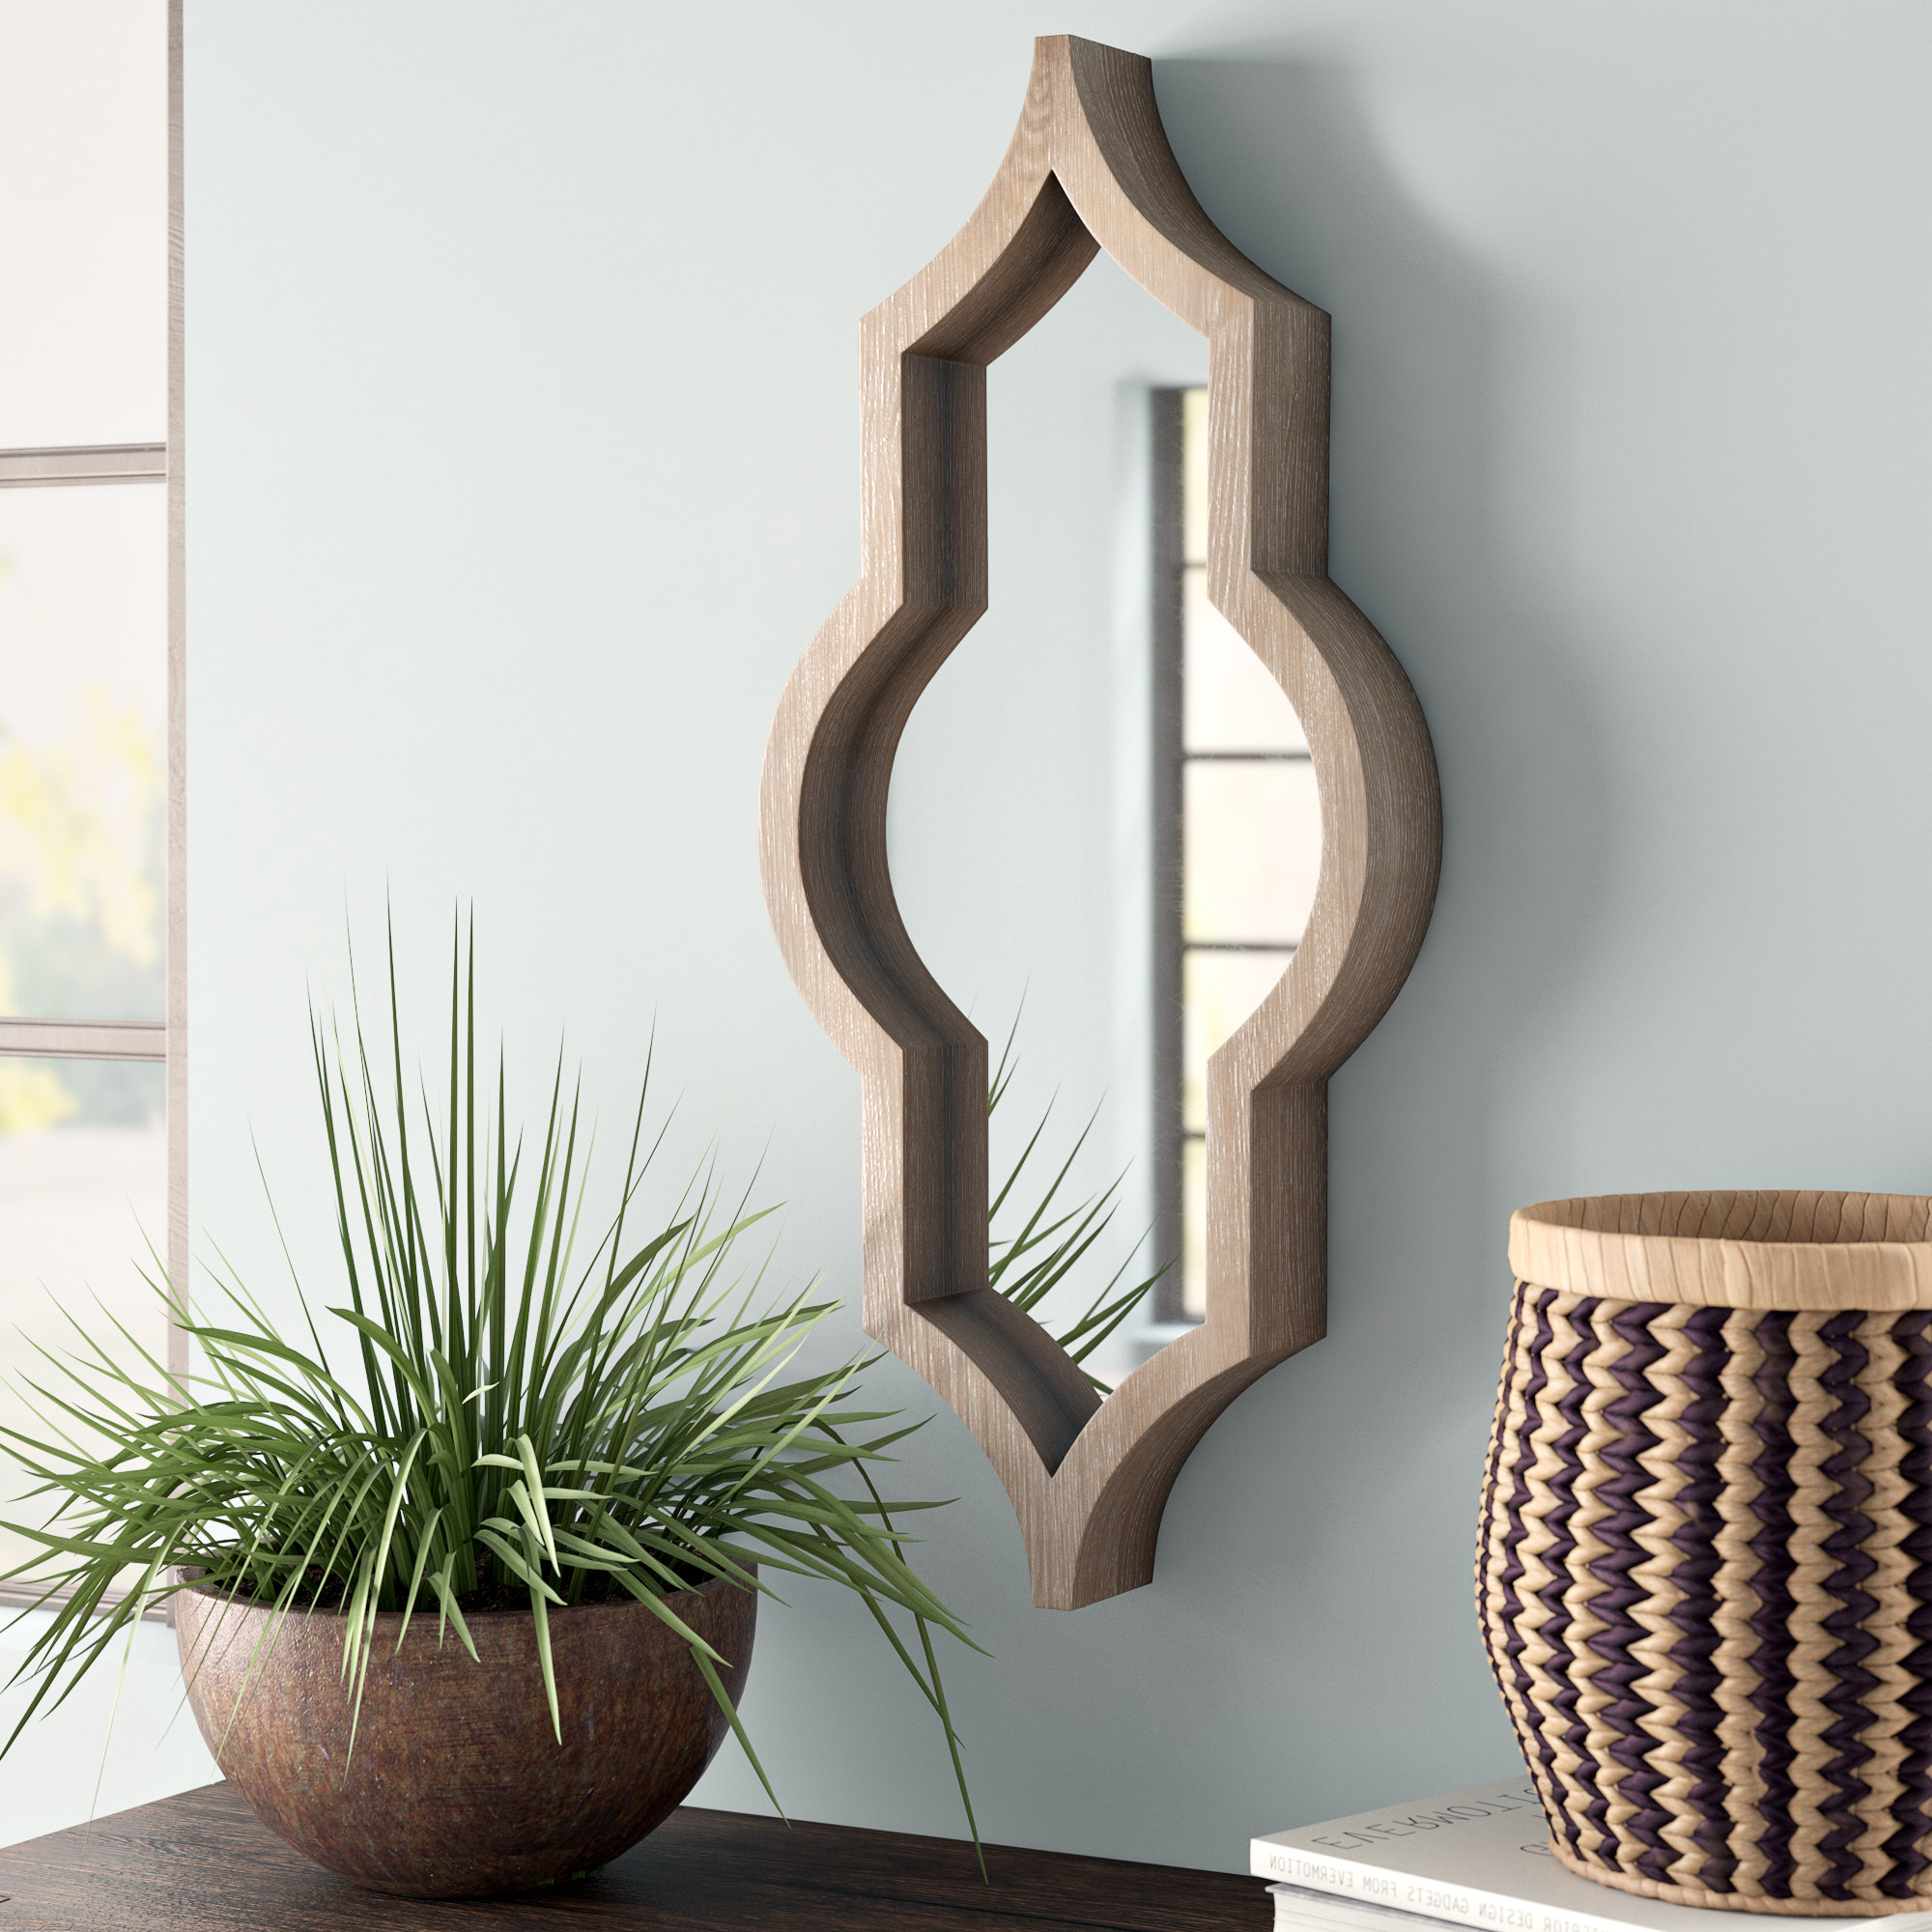 Padang Irregular Wood Framed Wall Mirrors Pertaining To Well Known Padang Irregular Wood Framed Wall Mirror (View 14 of 20)